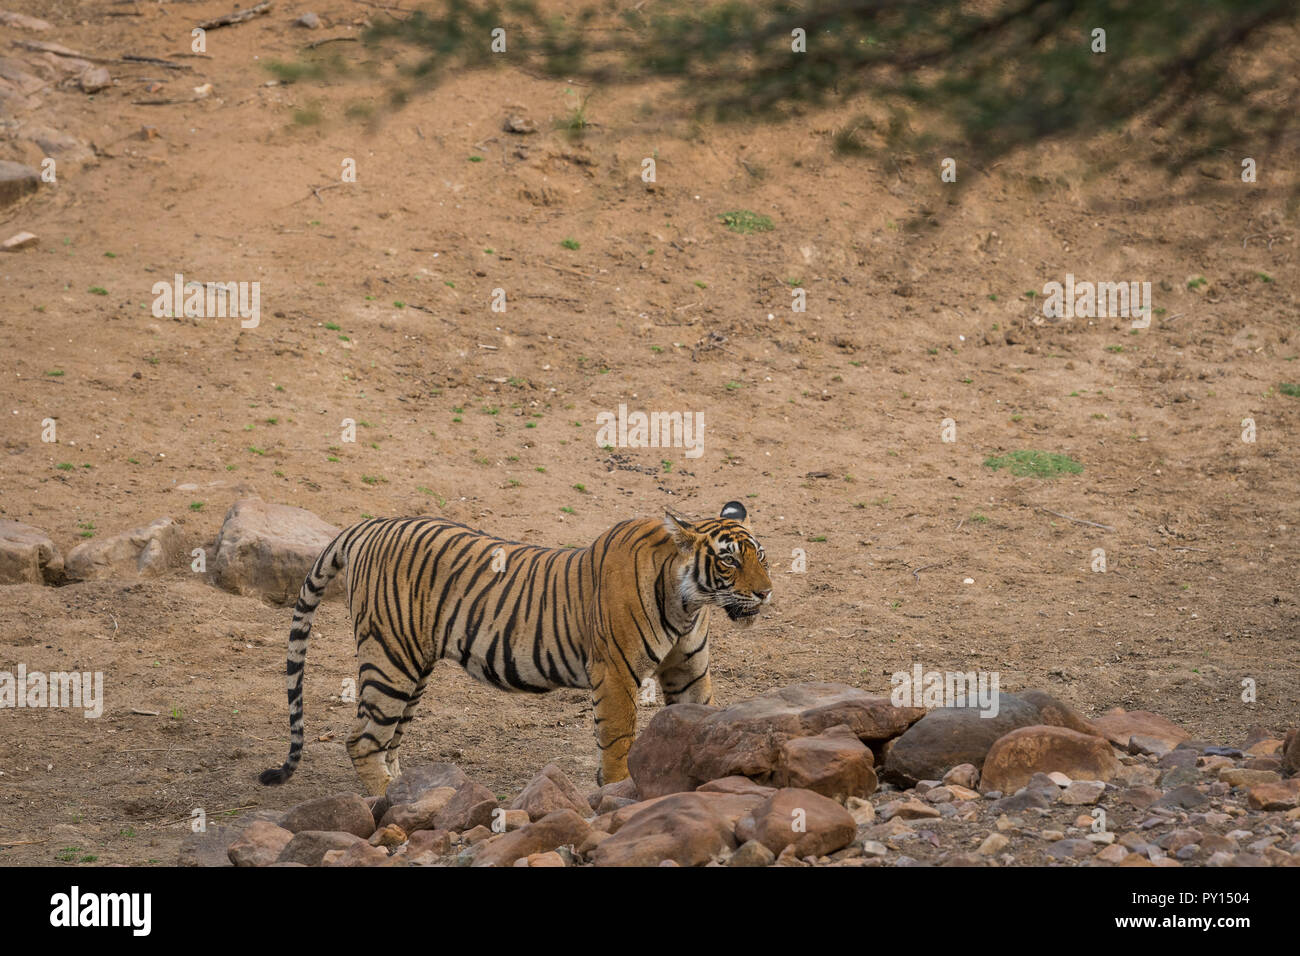 A territorial fight between a male tiger and female sub adult tigress at Ranthambore National Park, India - Stock Image